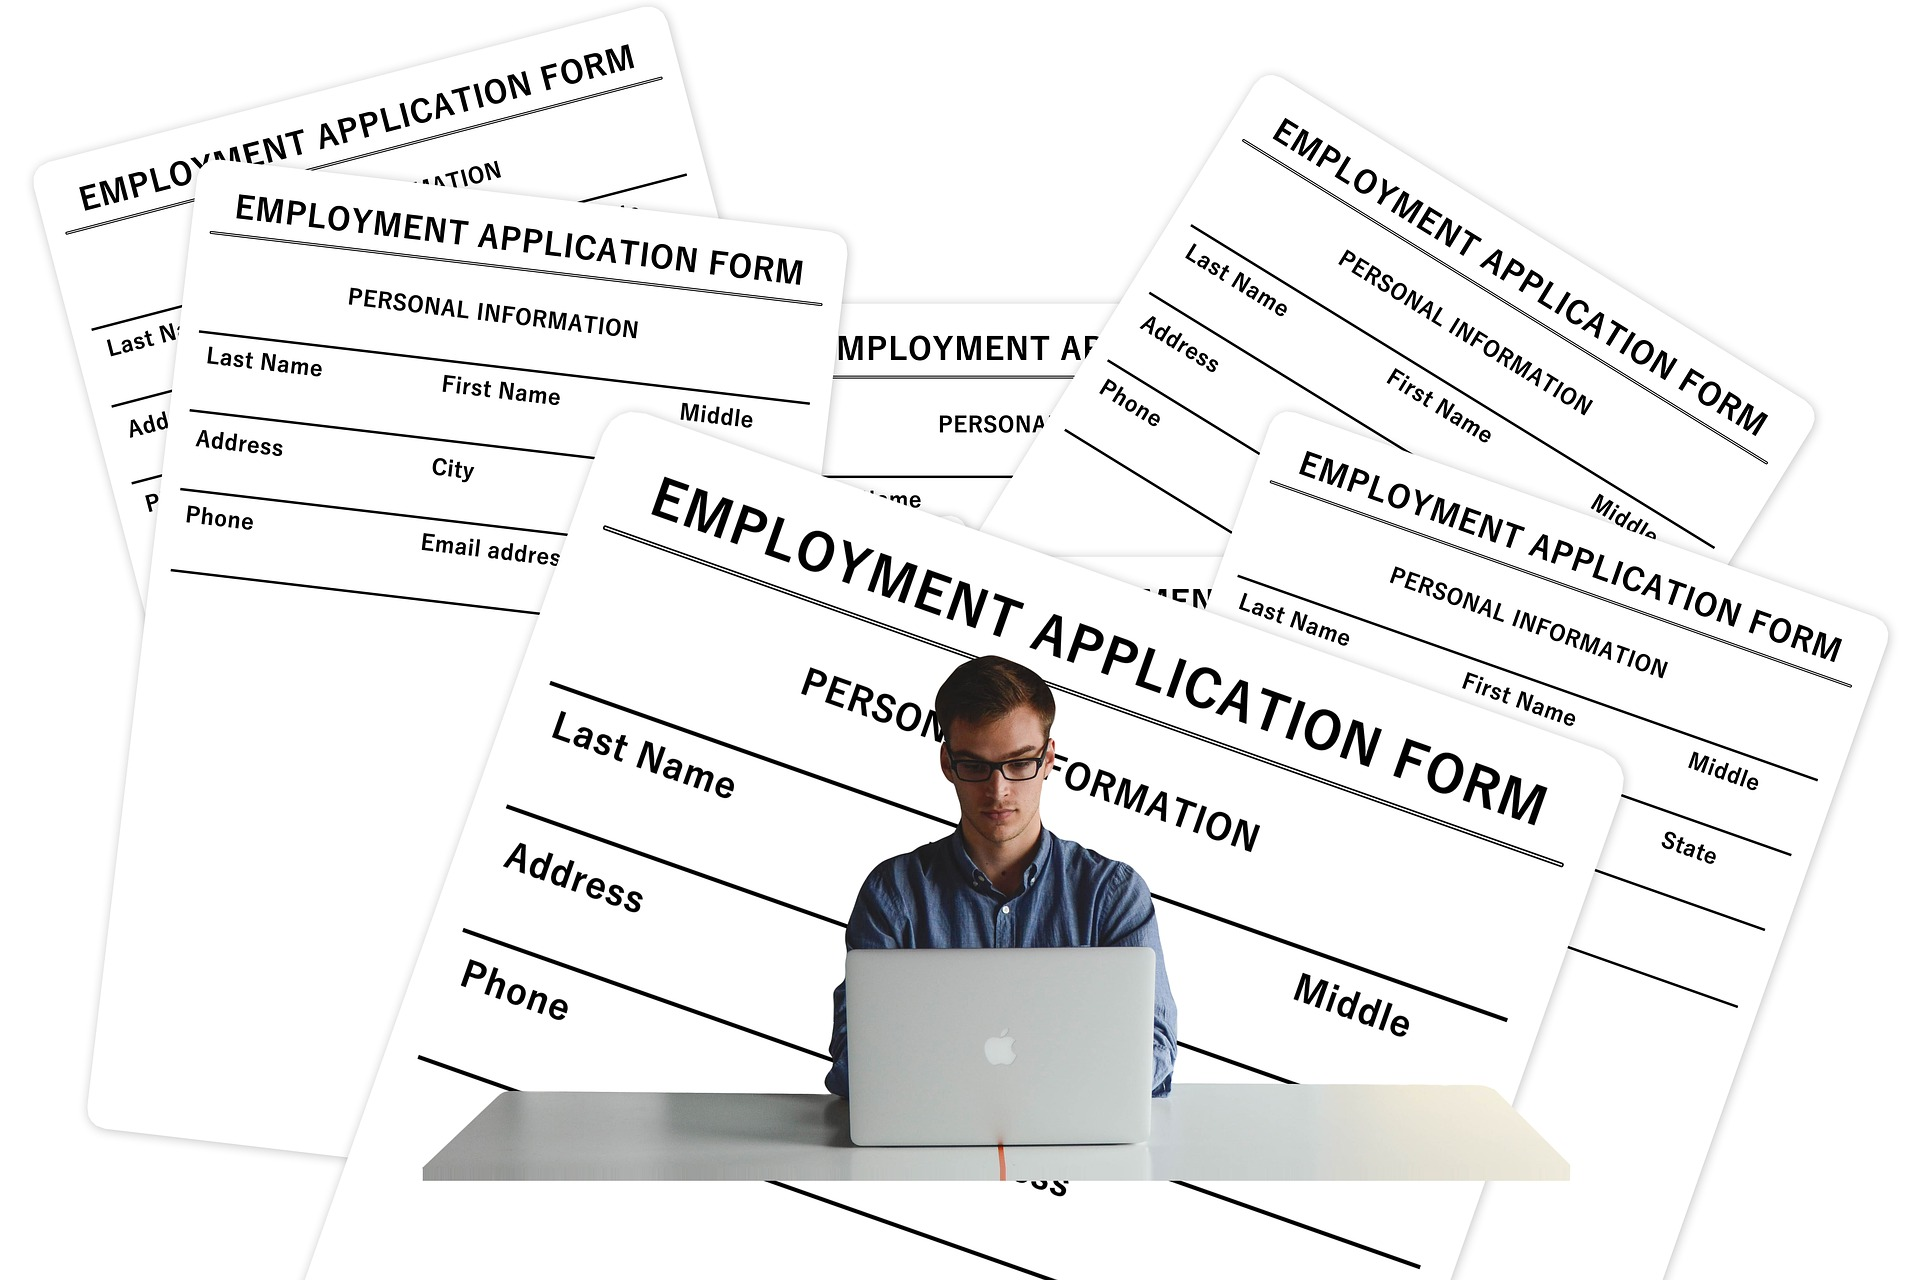 Marvelous Job Application Rejected? 4 Steps You Can Take To Bounce Back